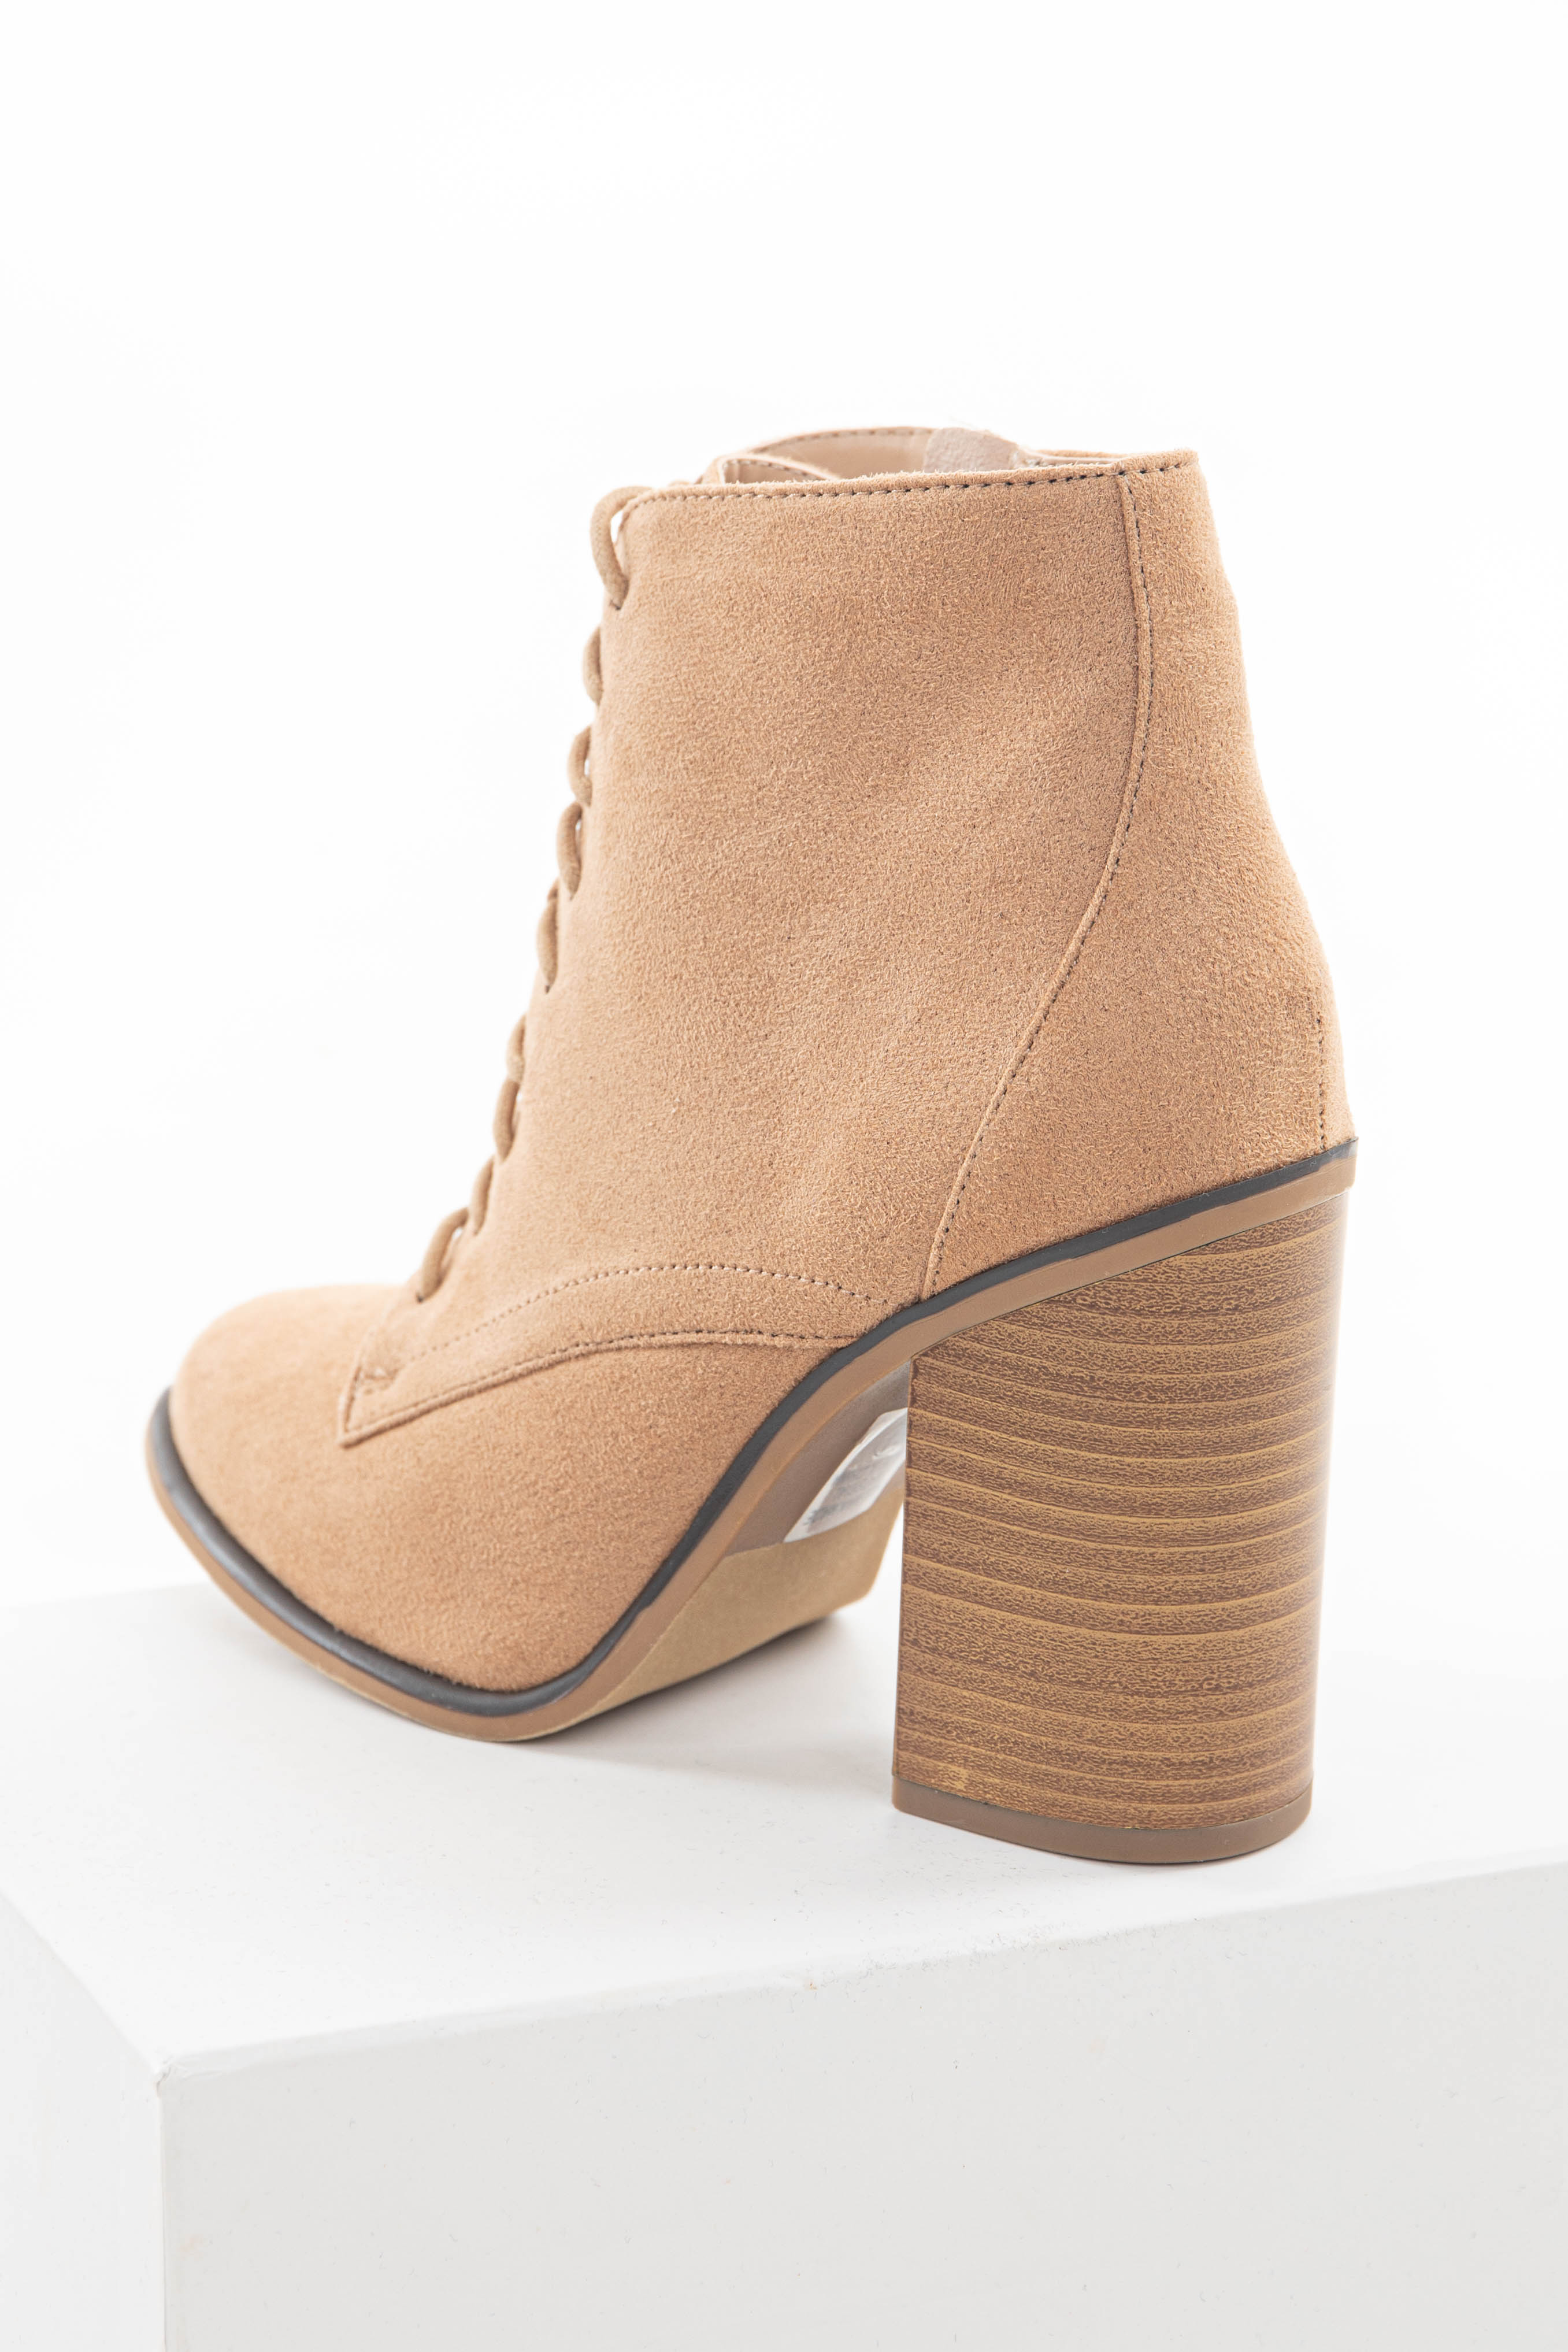 Nude Faux Suede Lace Up High Heel Booties